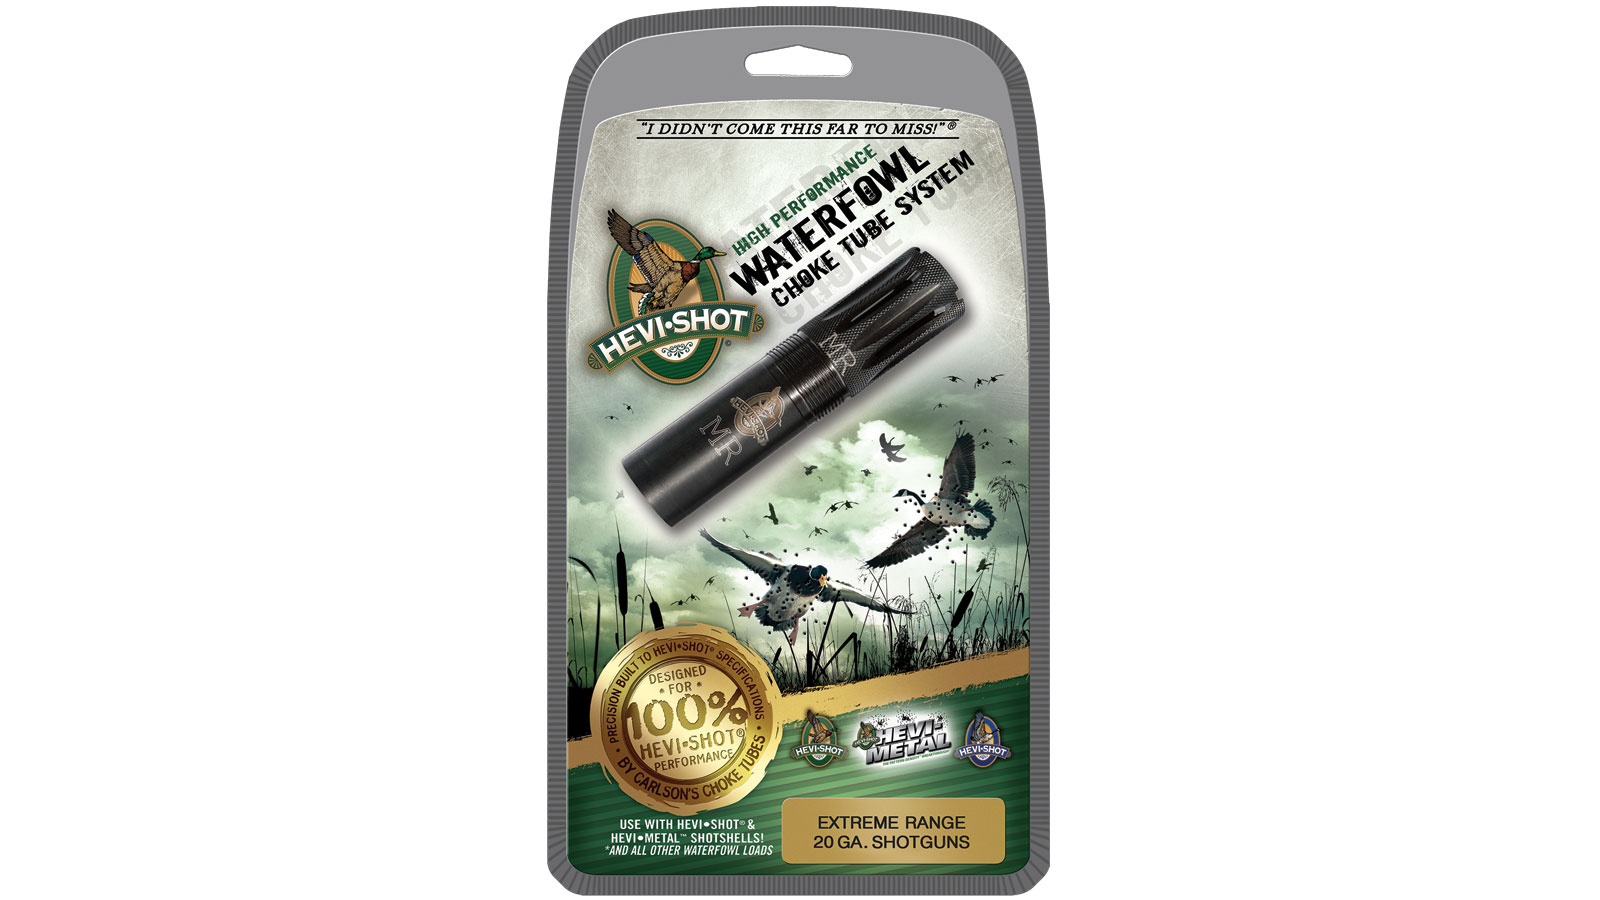 Hevishot 240123 Hevi-Choke Waterfowl Crio Plus 20 Gauge Extended Range 17-4 Stainless Steel Black